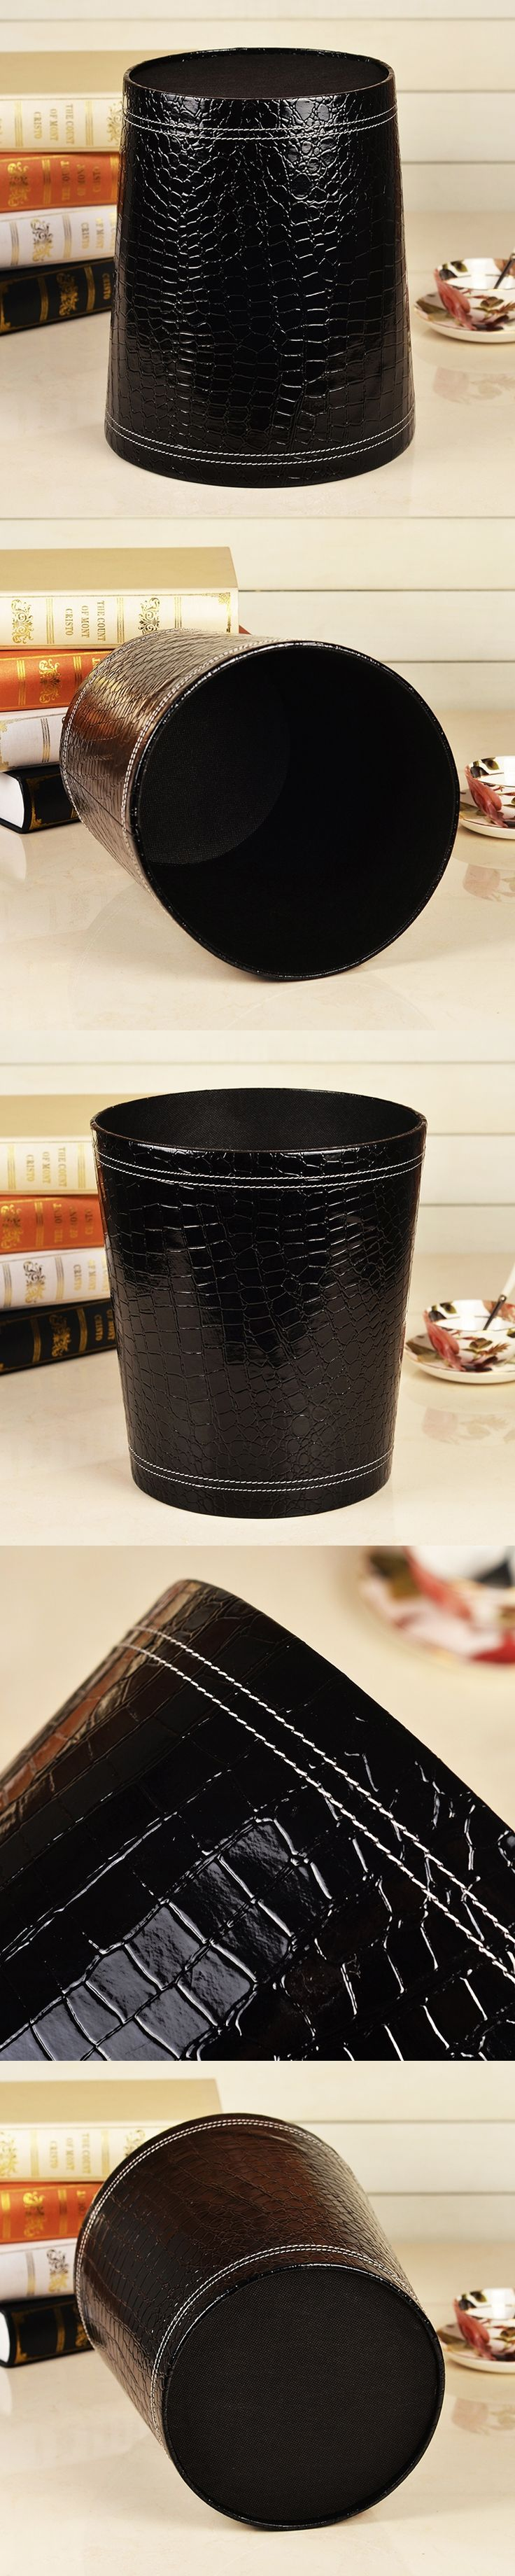 Creative Black Crocodile Grain Leather Trash Can Waste Bins Bedroom Garbage Container wooden fabric wastebasket Dustbin case box